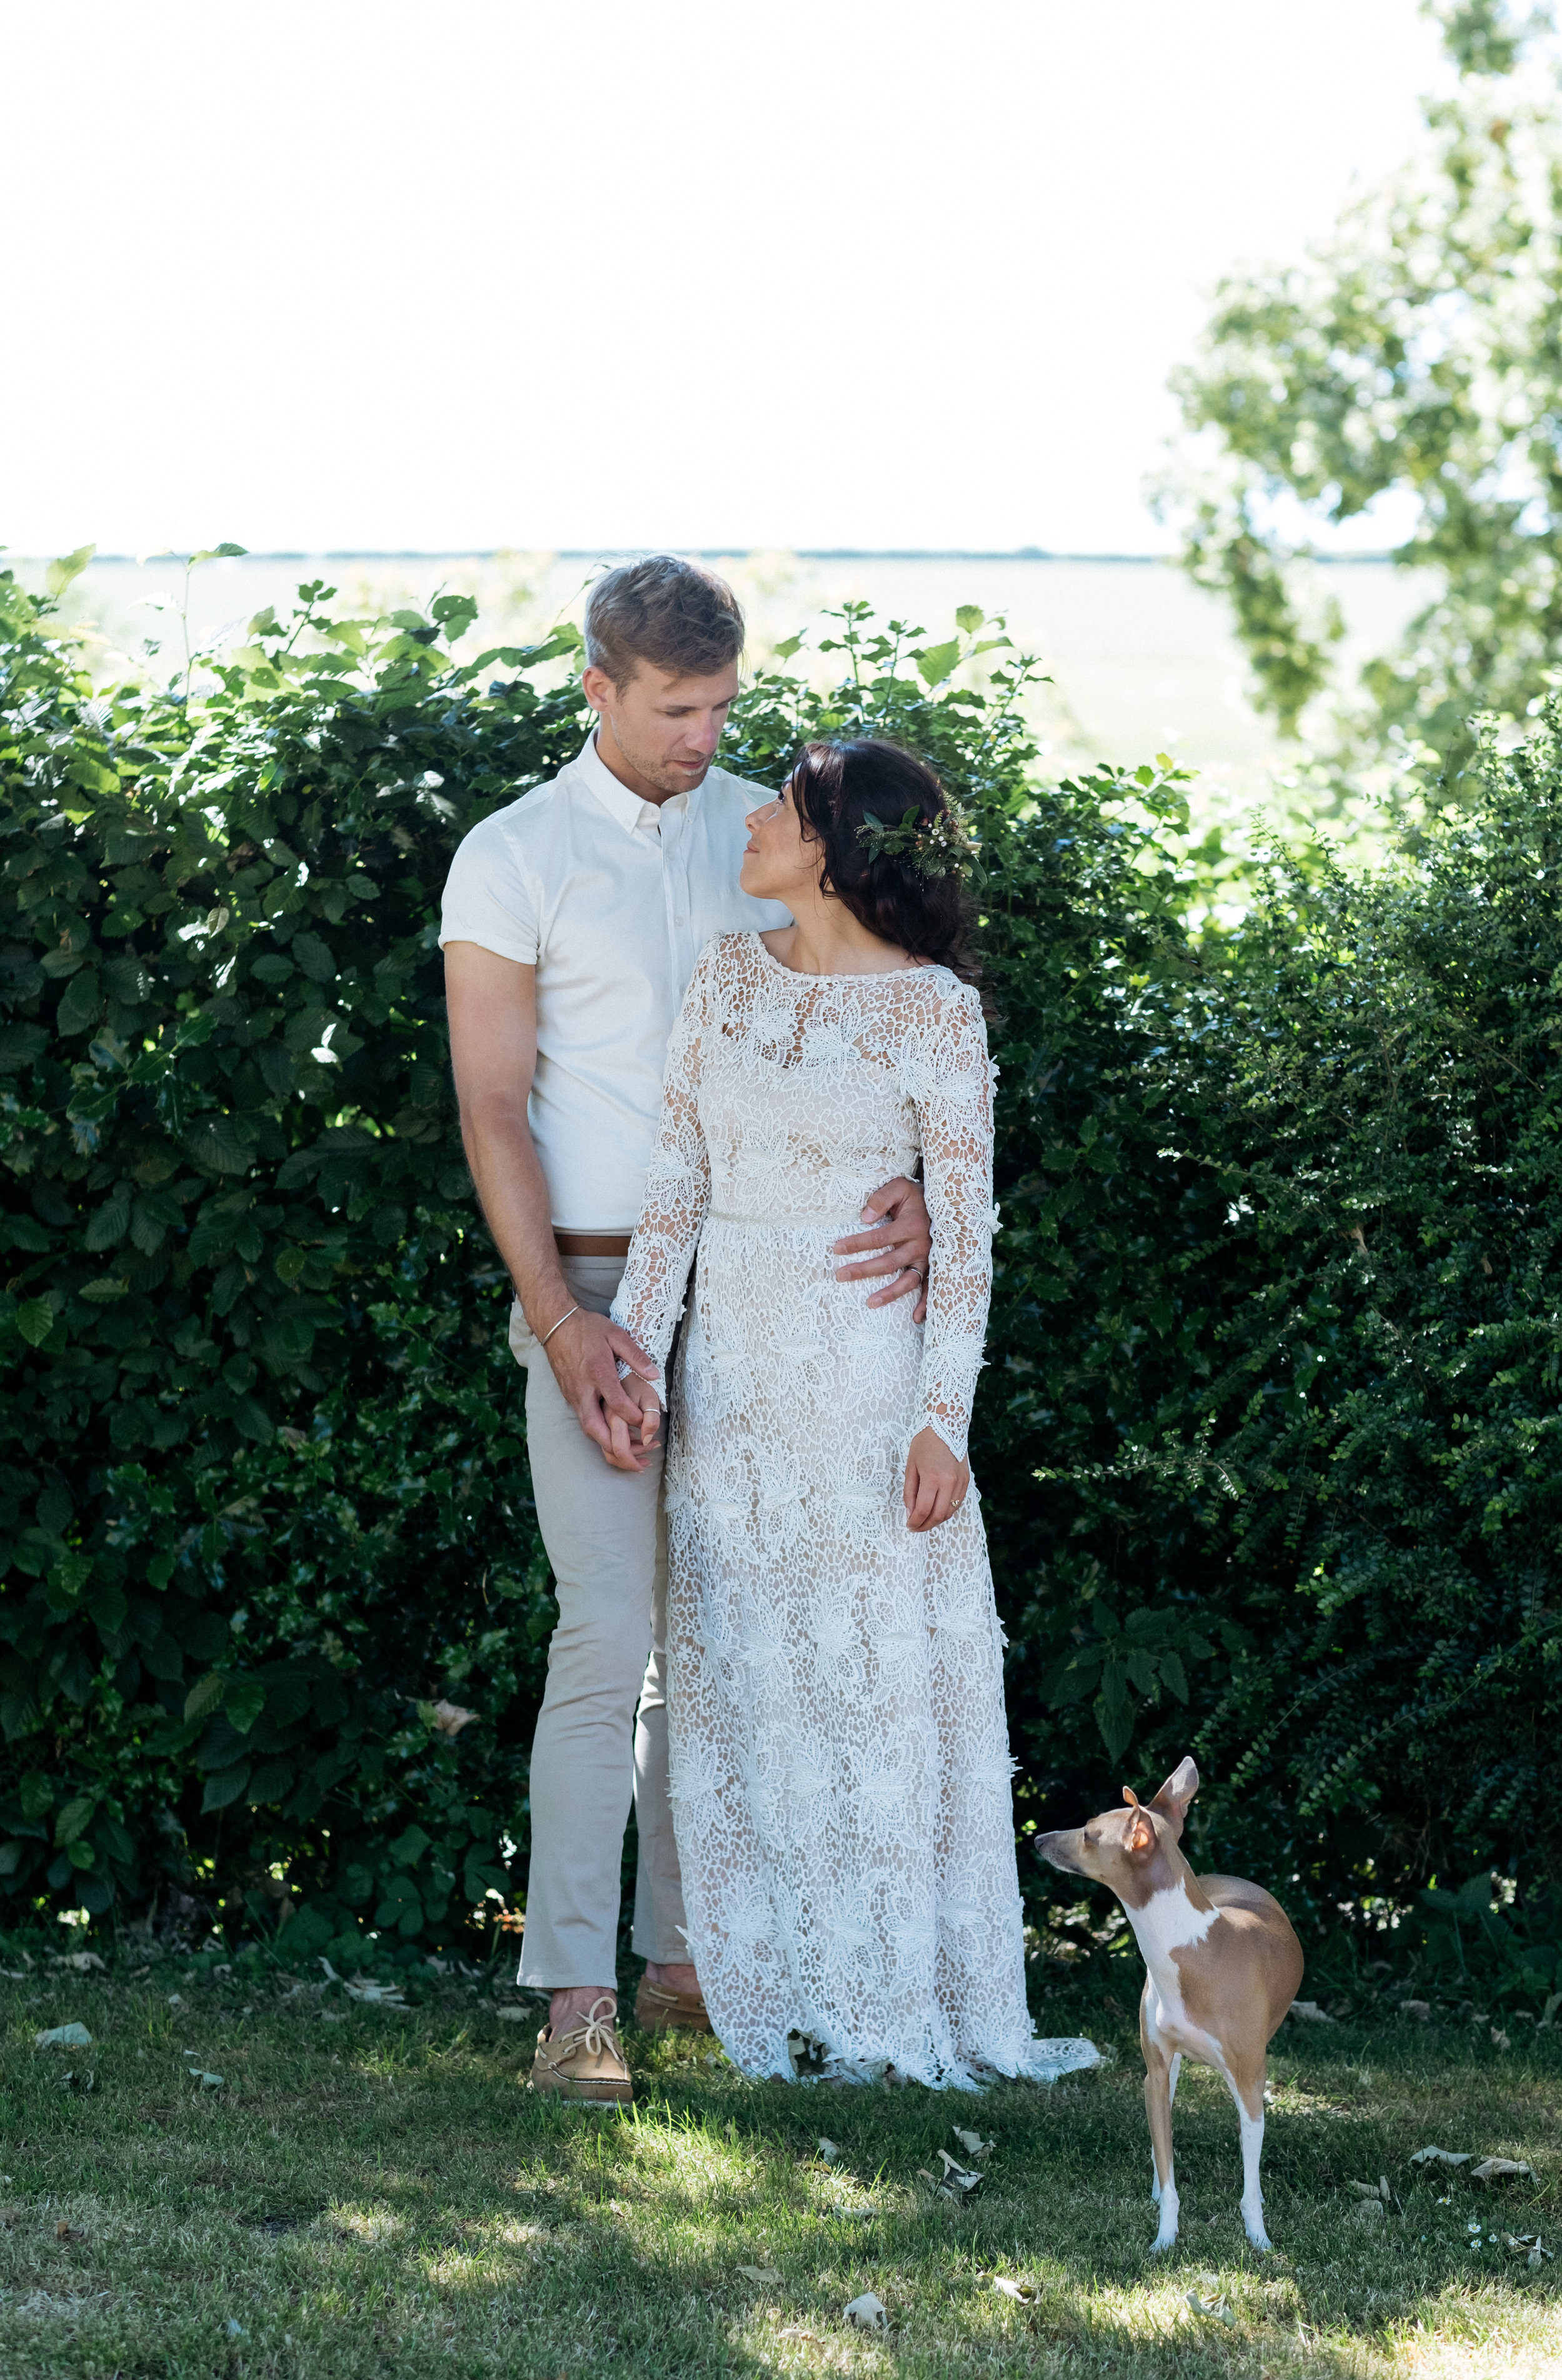 Bride and groom and their Italian greyhound